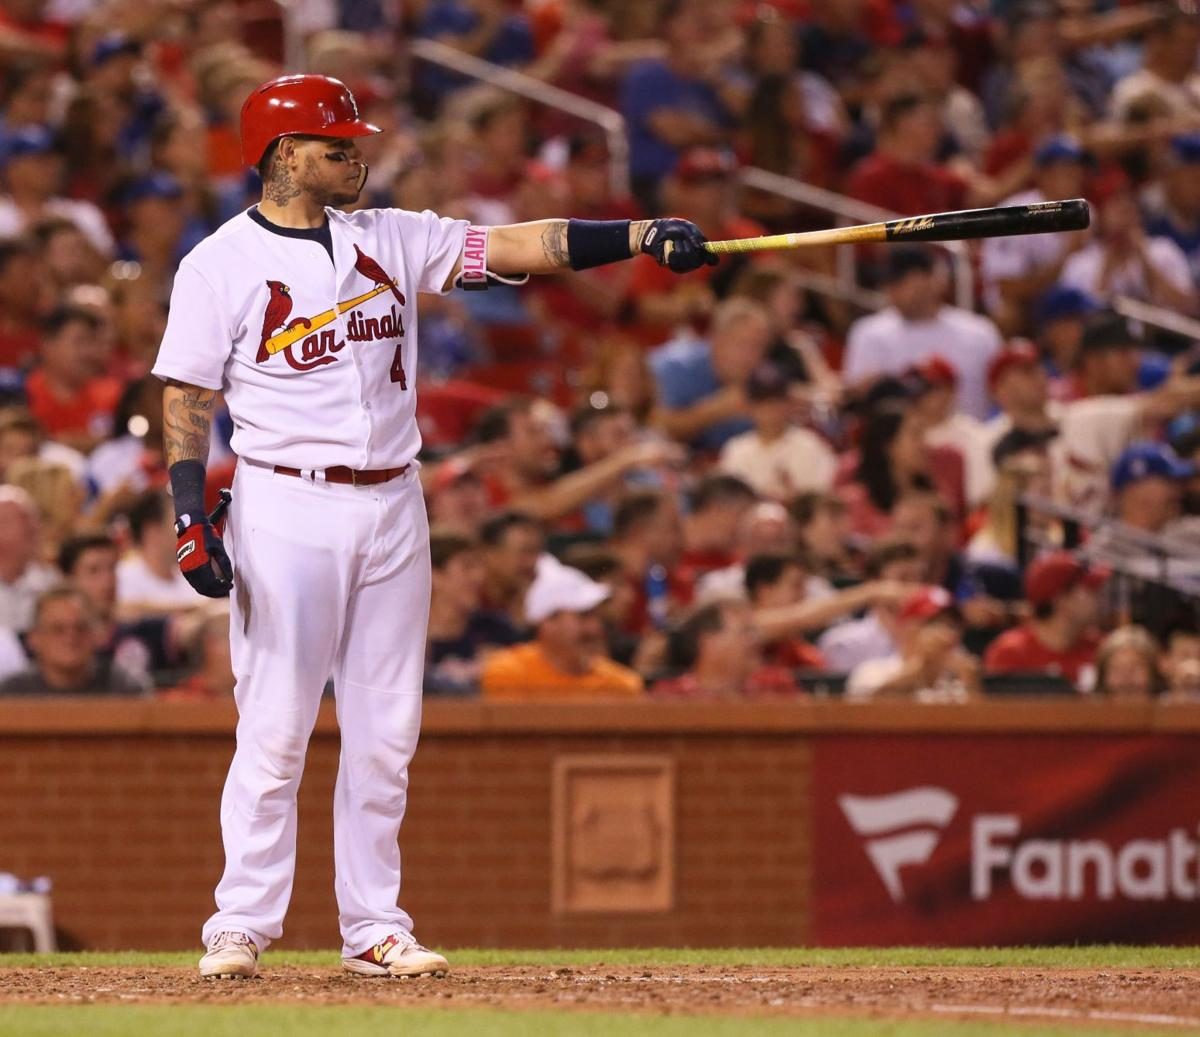 Yadi is the cat\'s meow — his slam wins game, sends kitty into ...